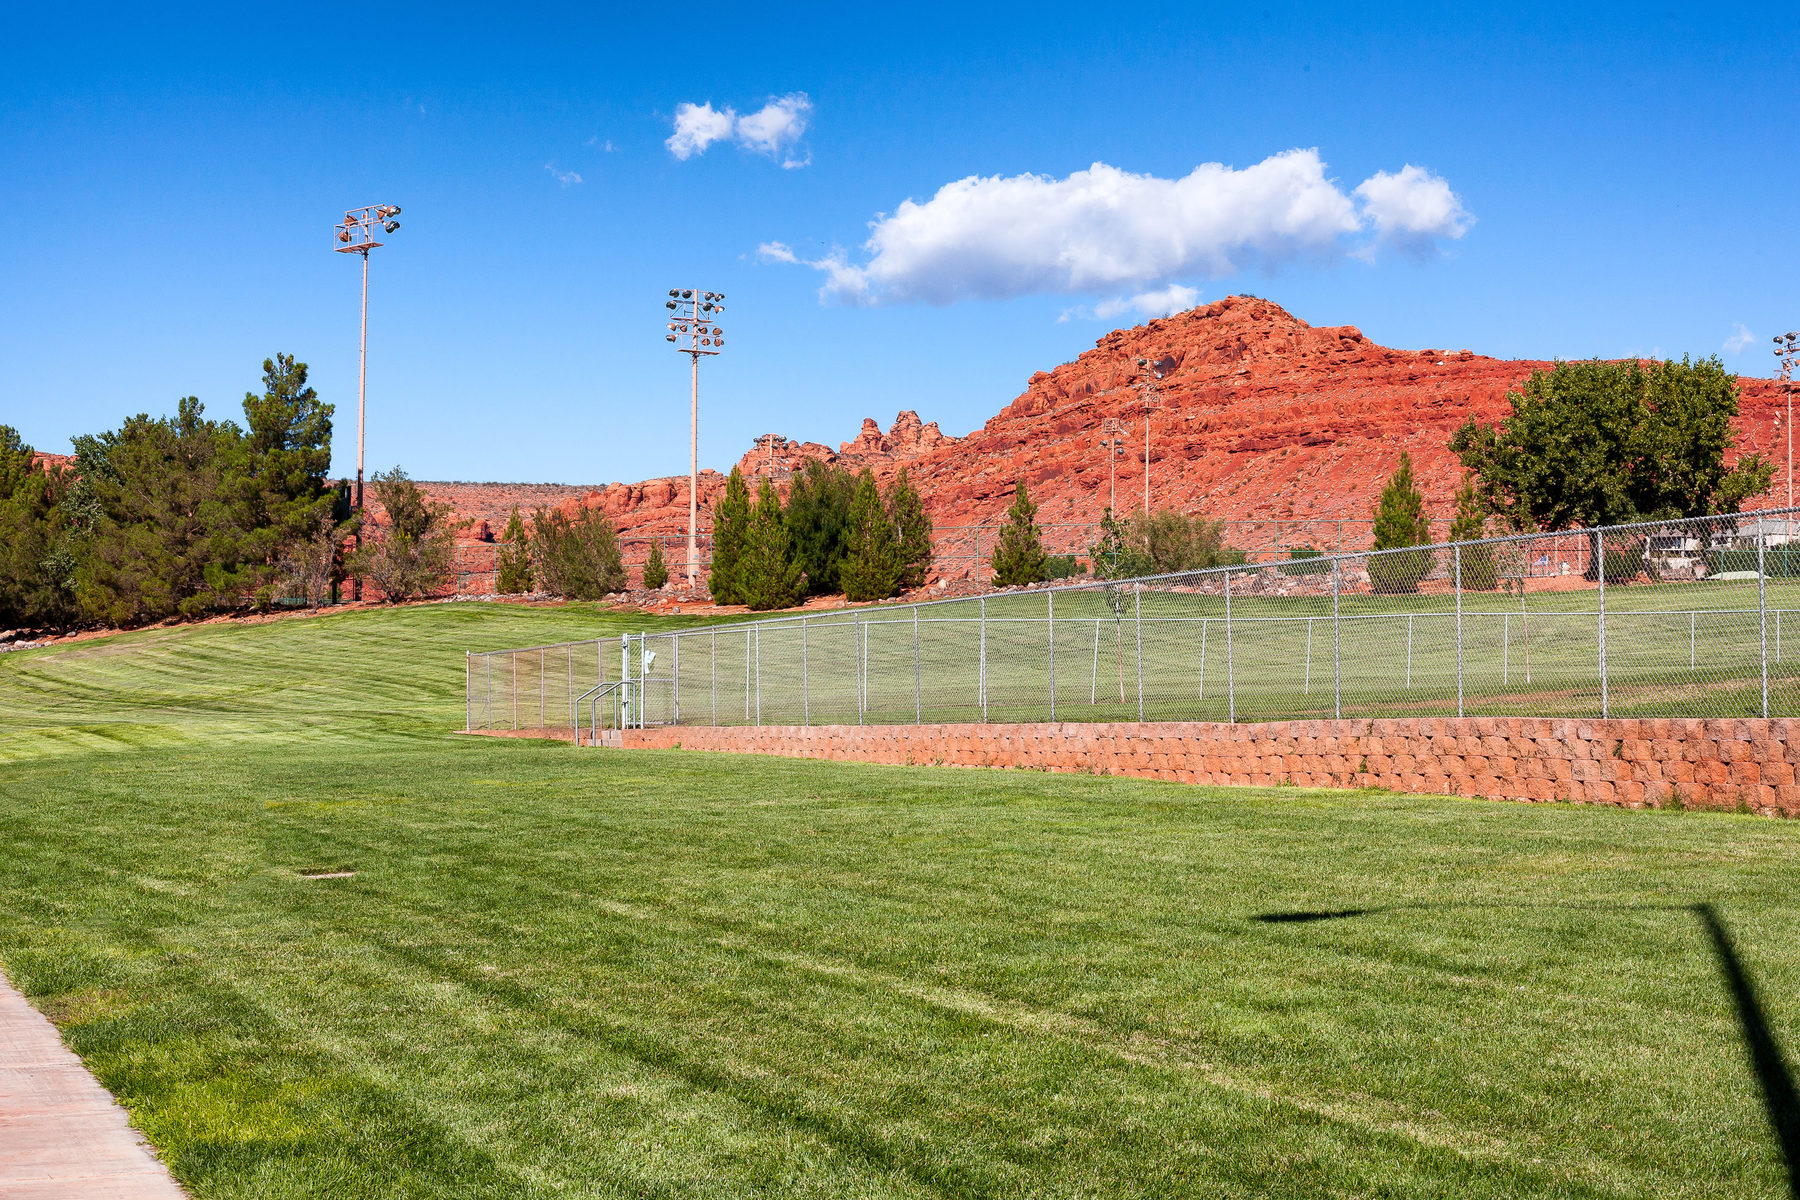 Additional photo for property listing at Exclusive Tuweap Point Lot 2090 N Tuweap Dr Lot 56 St. George, Utah 84770 United States